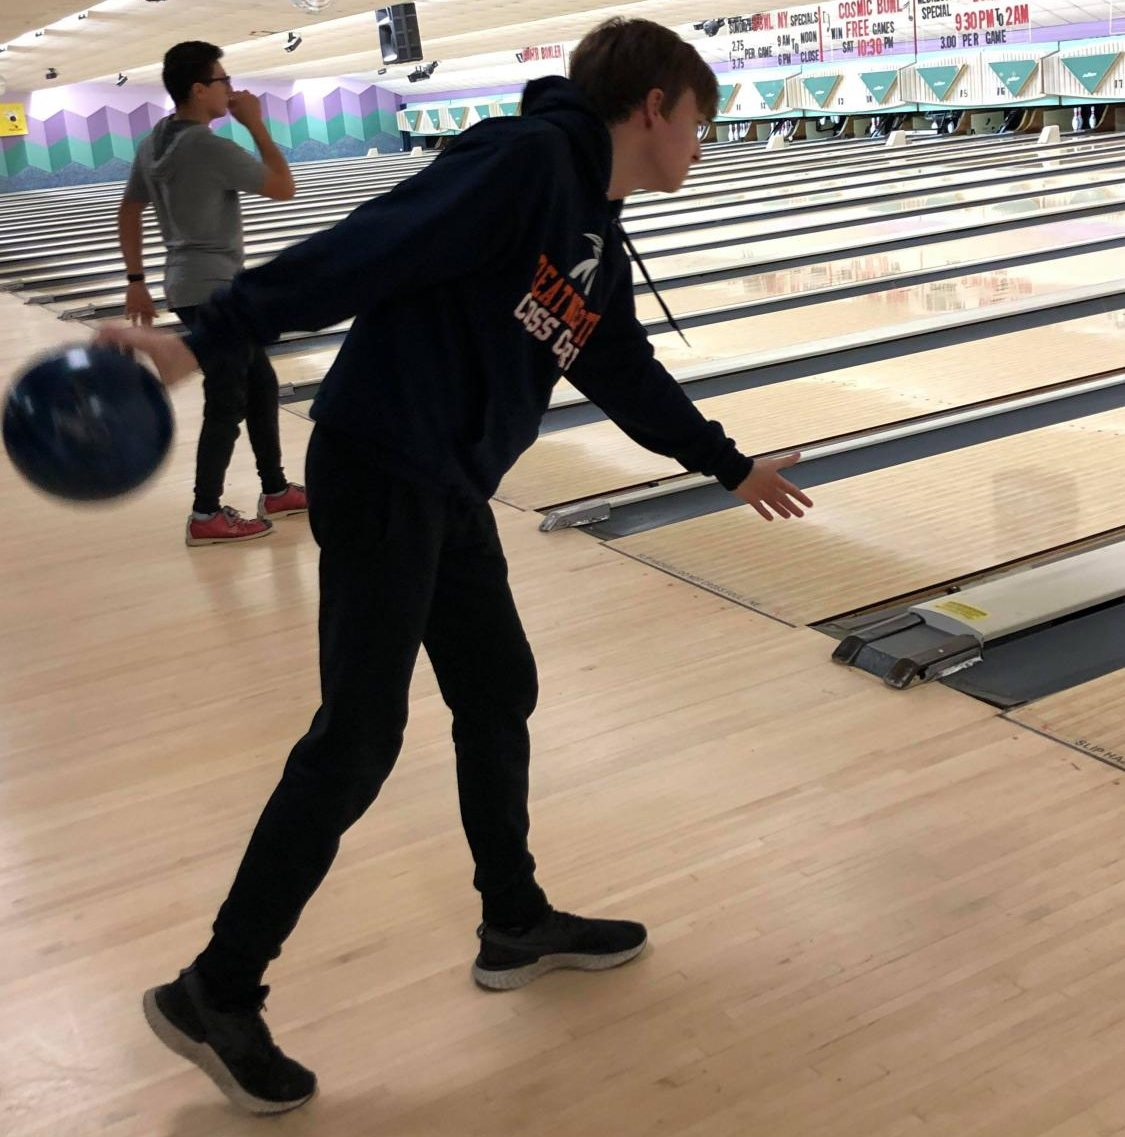 Jan Kaluta, a new member of North High's bowling team aims for a strike during practice at Herrill Lanes. The bowling team, despite its incognito existence, has seen a recent resurgence, as this was the first time in recent years not everyone who tried-out made the team.